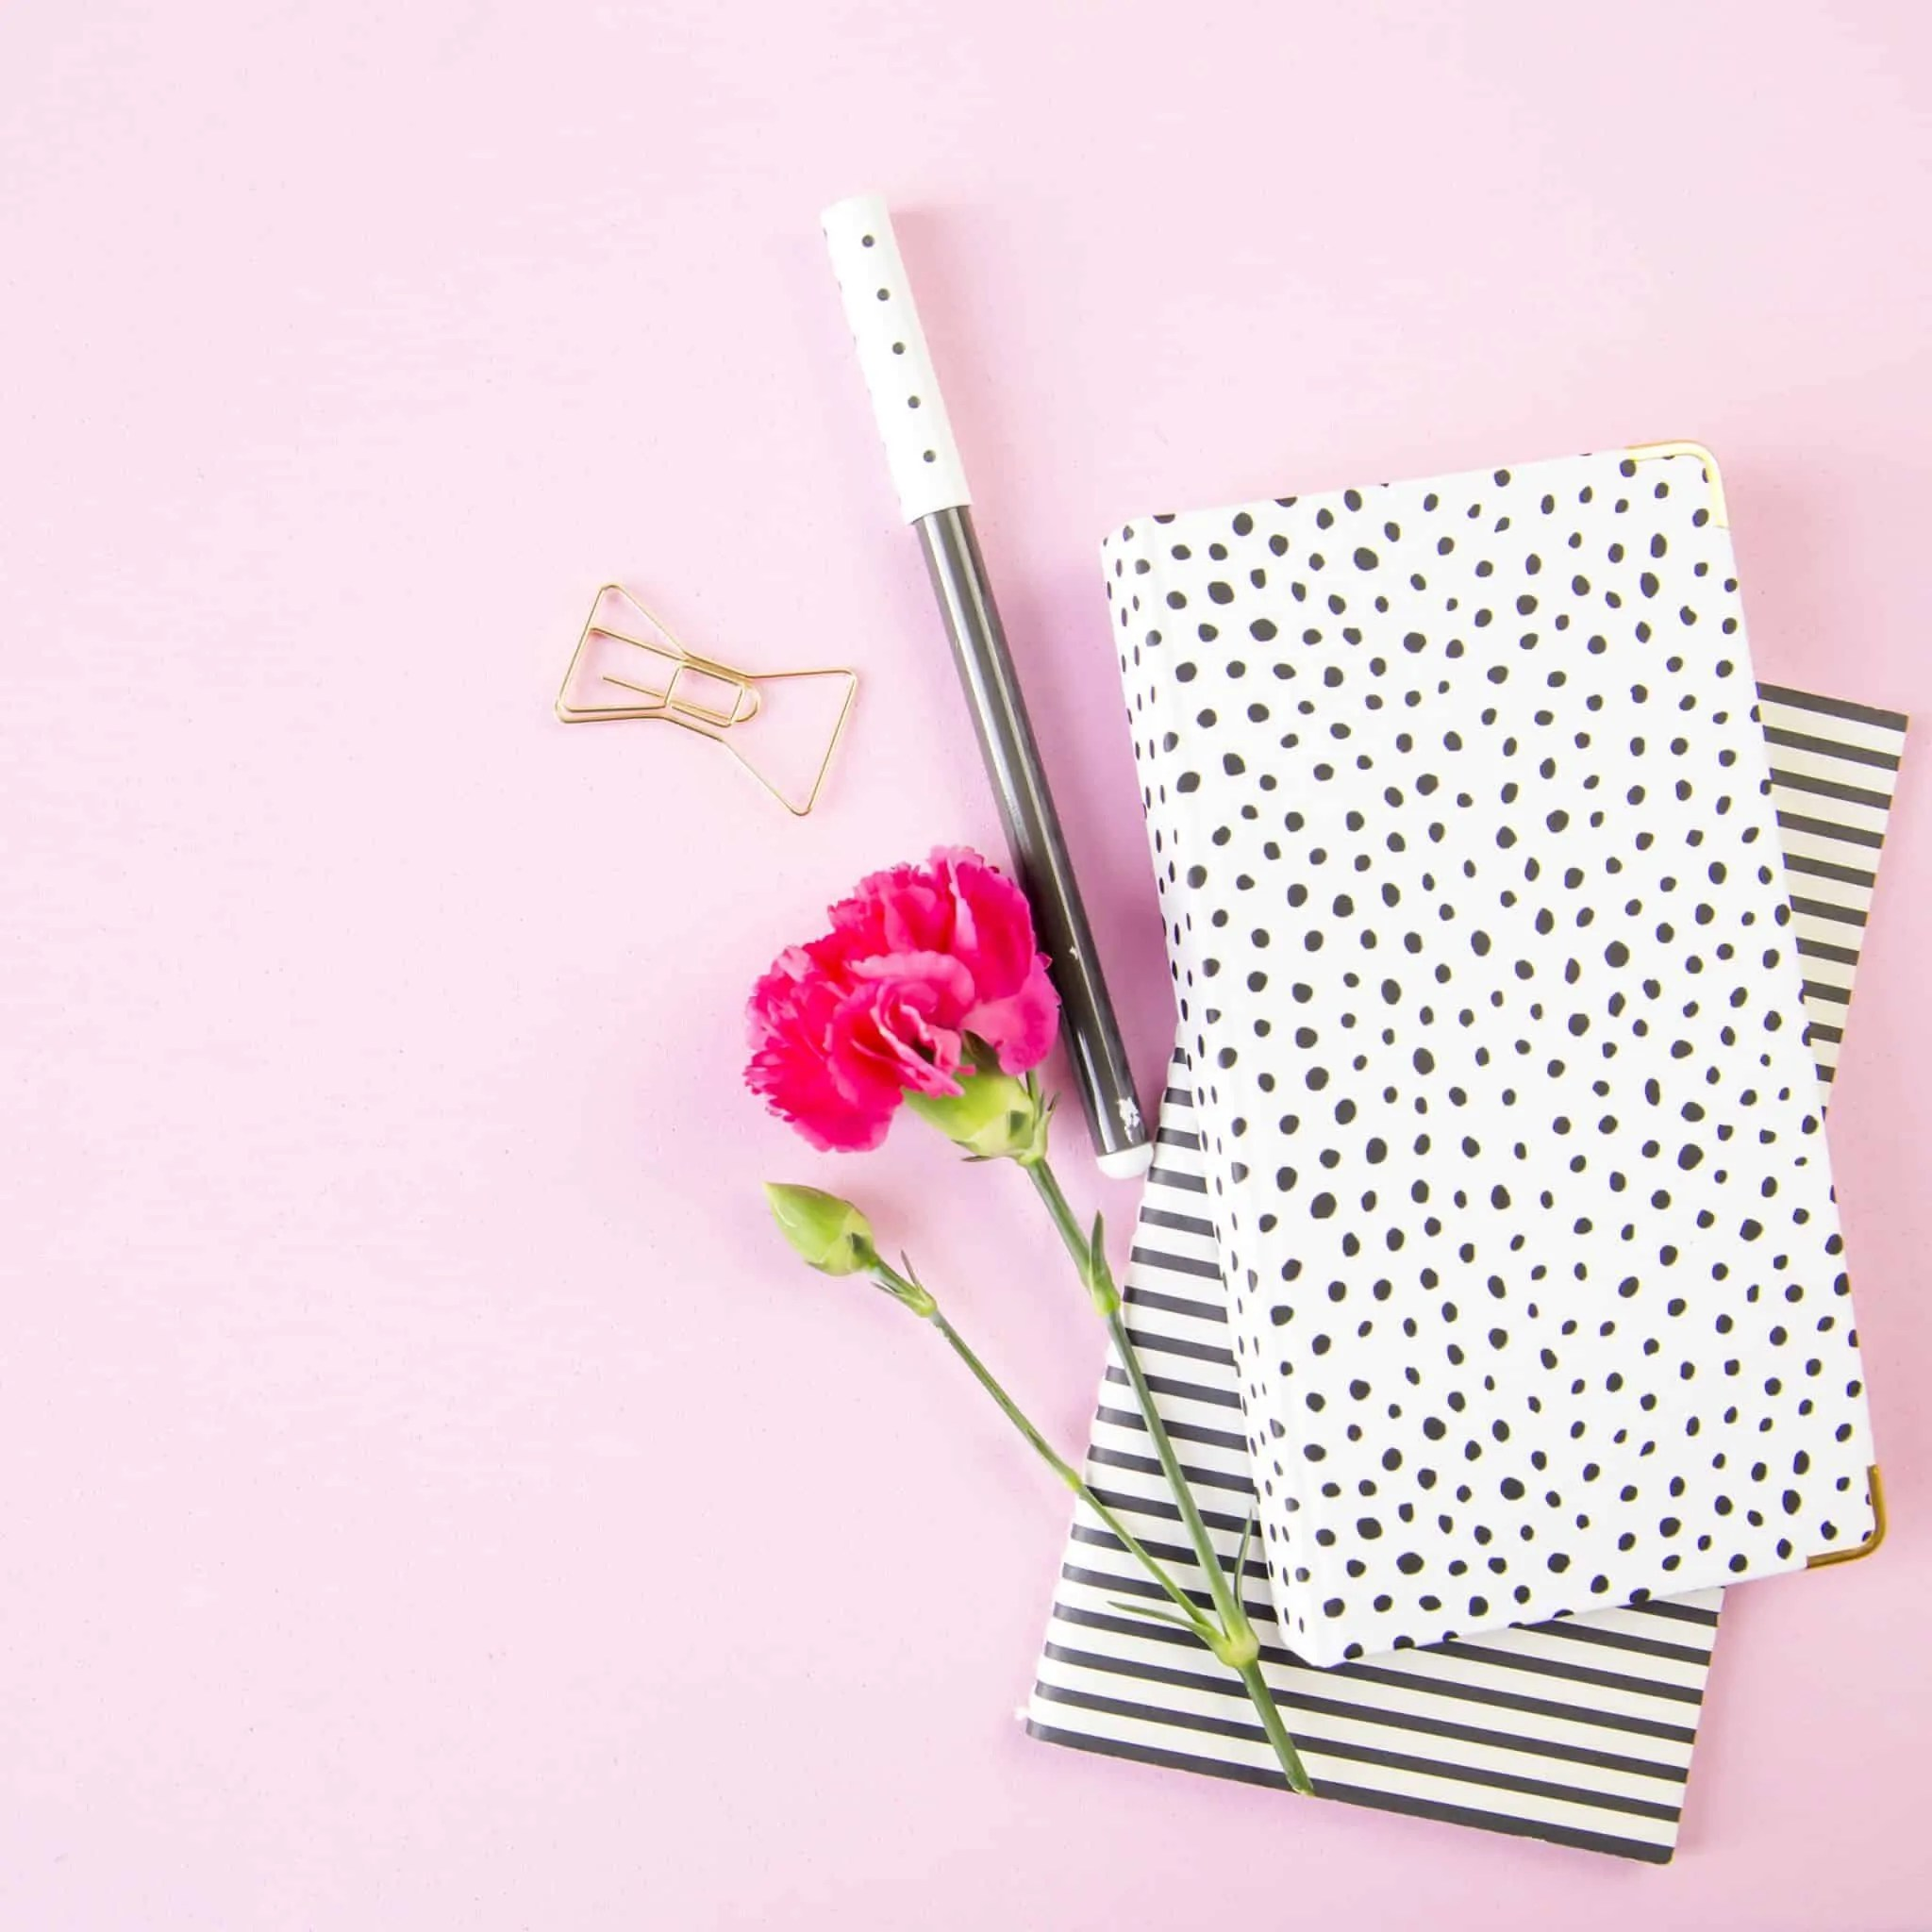 Ultimate self care tips for bloggers set monthly goals